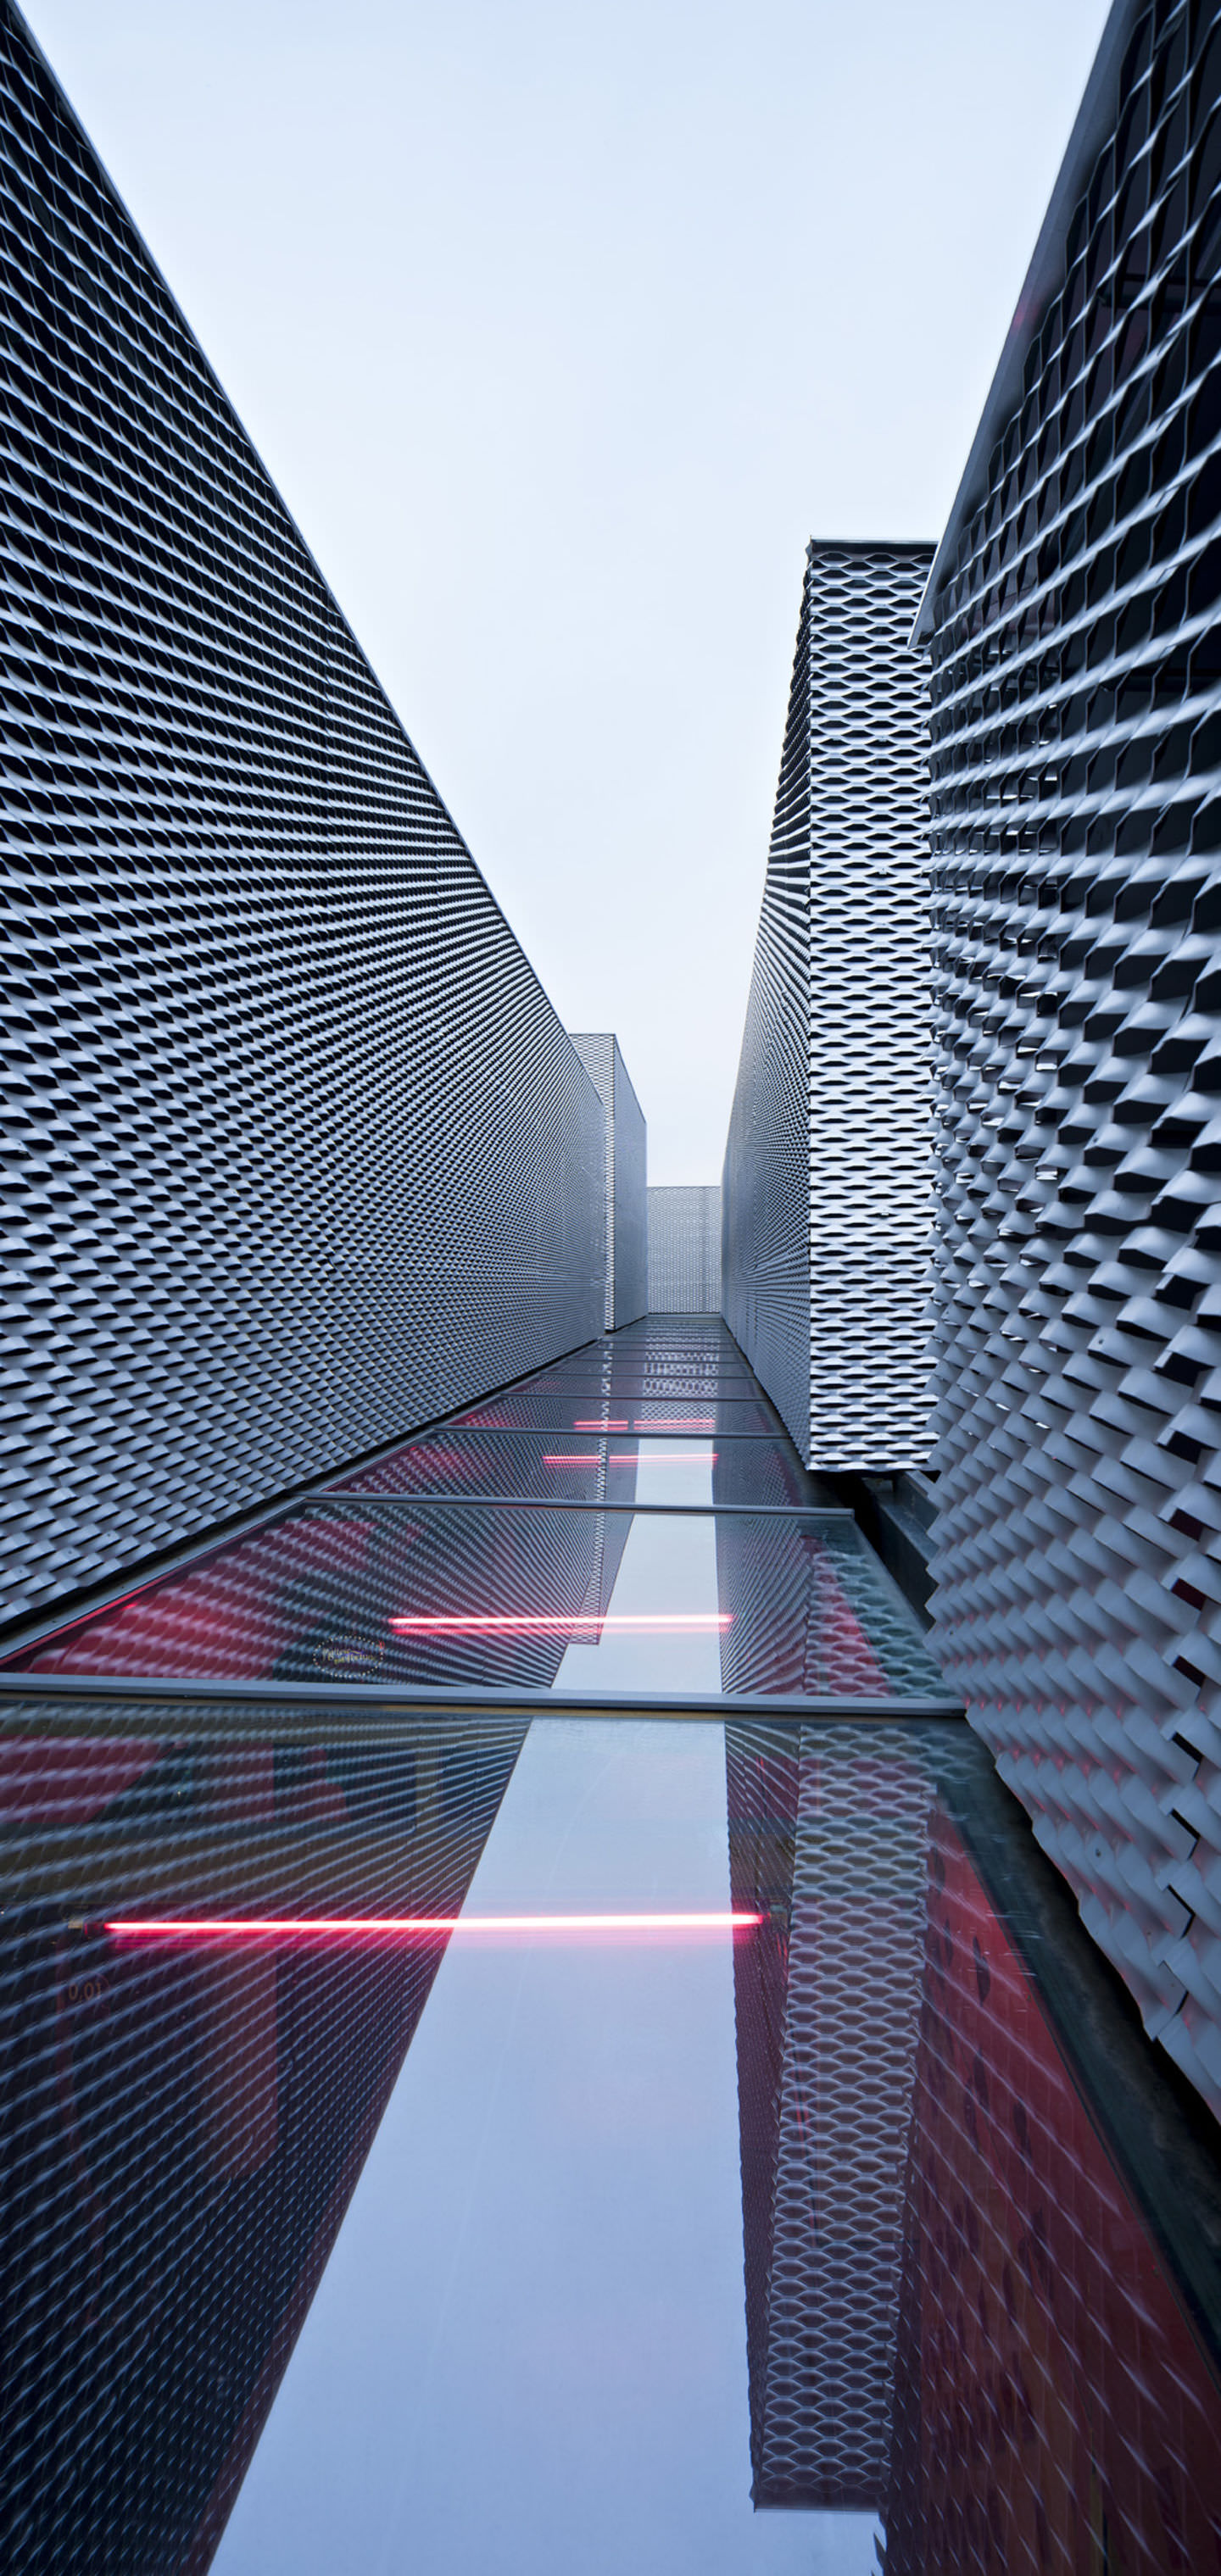 buildings walls office architecture city modern business steel urban futuristic building